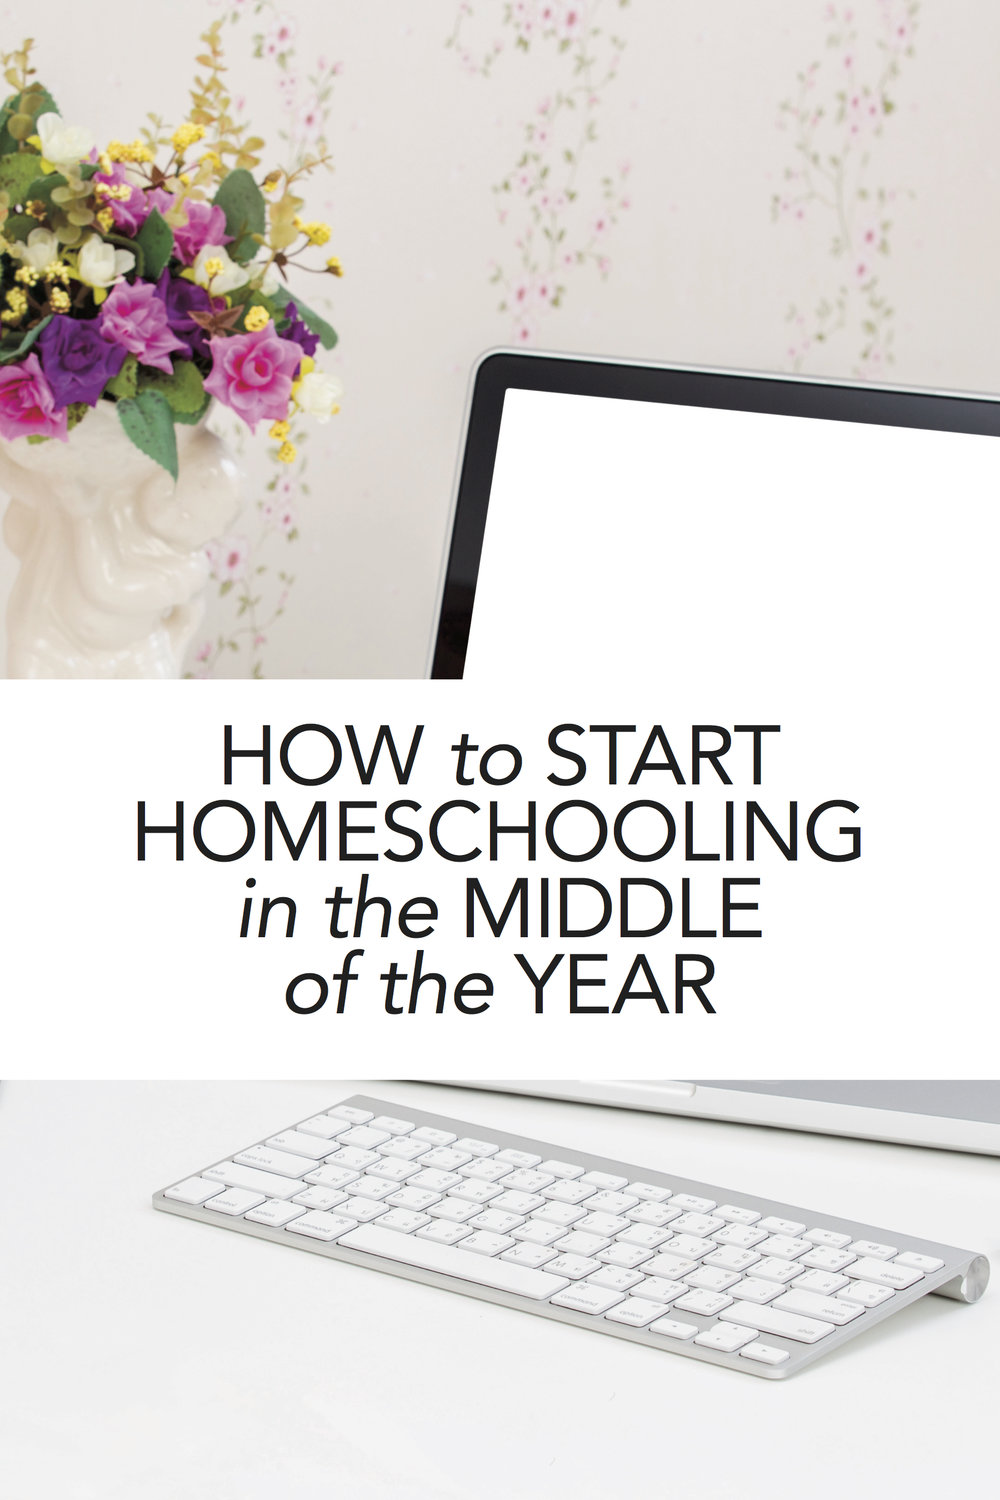 How to start homeschooling the middle of the year